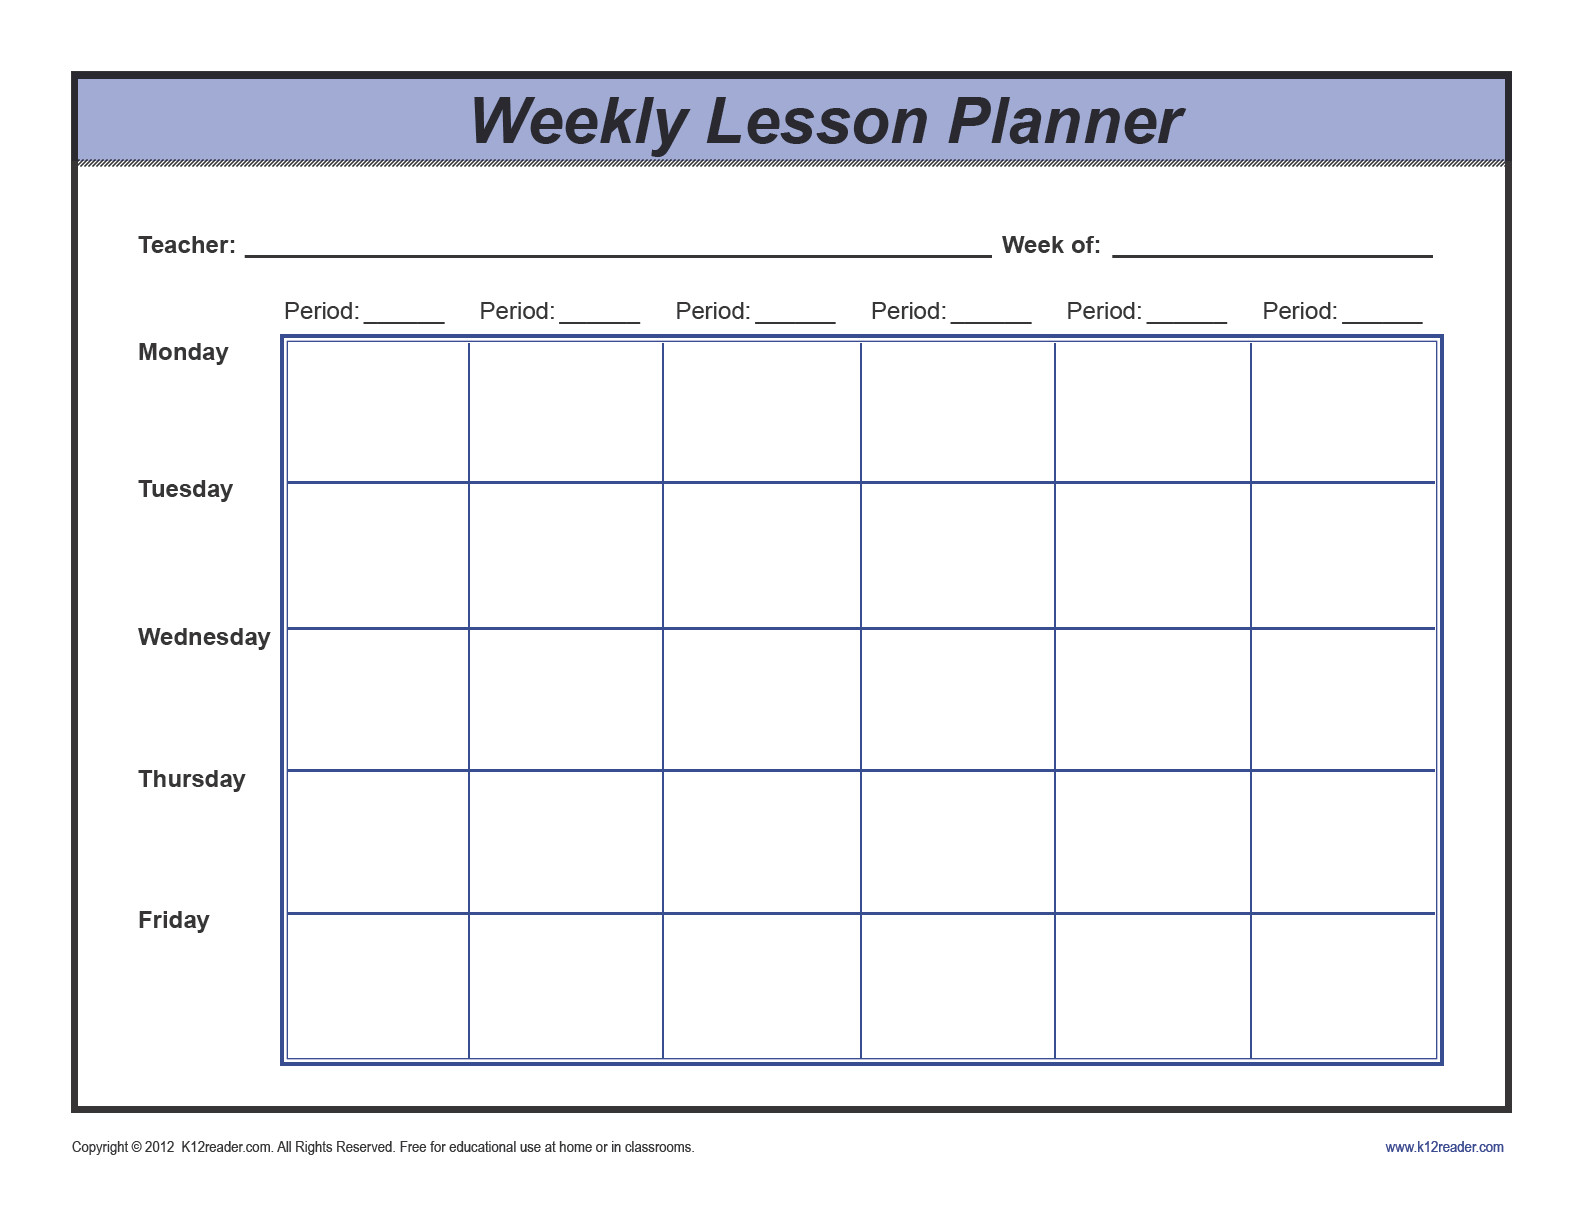 Weekly Lesson Plan Template Pdf Download Weekly Lesson Plan Template Preschool